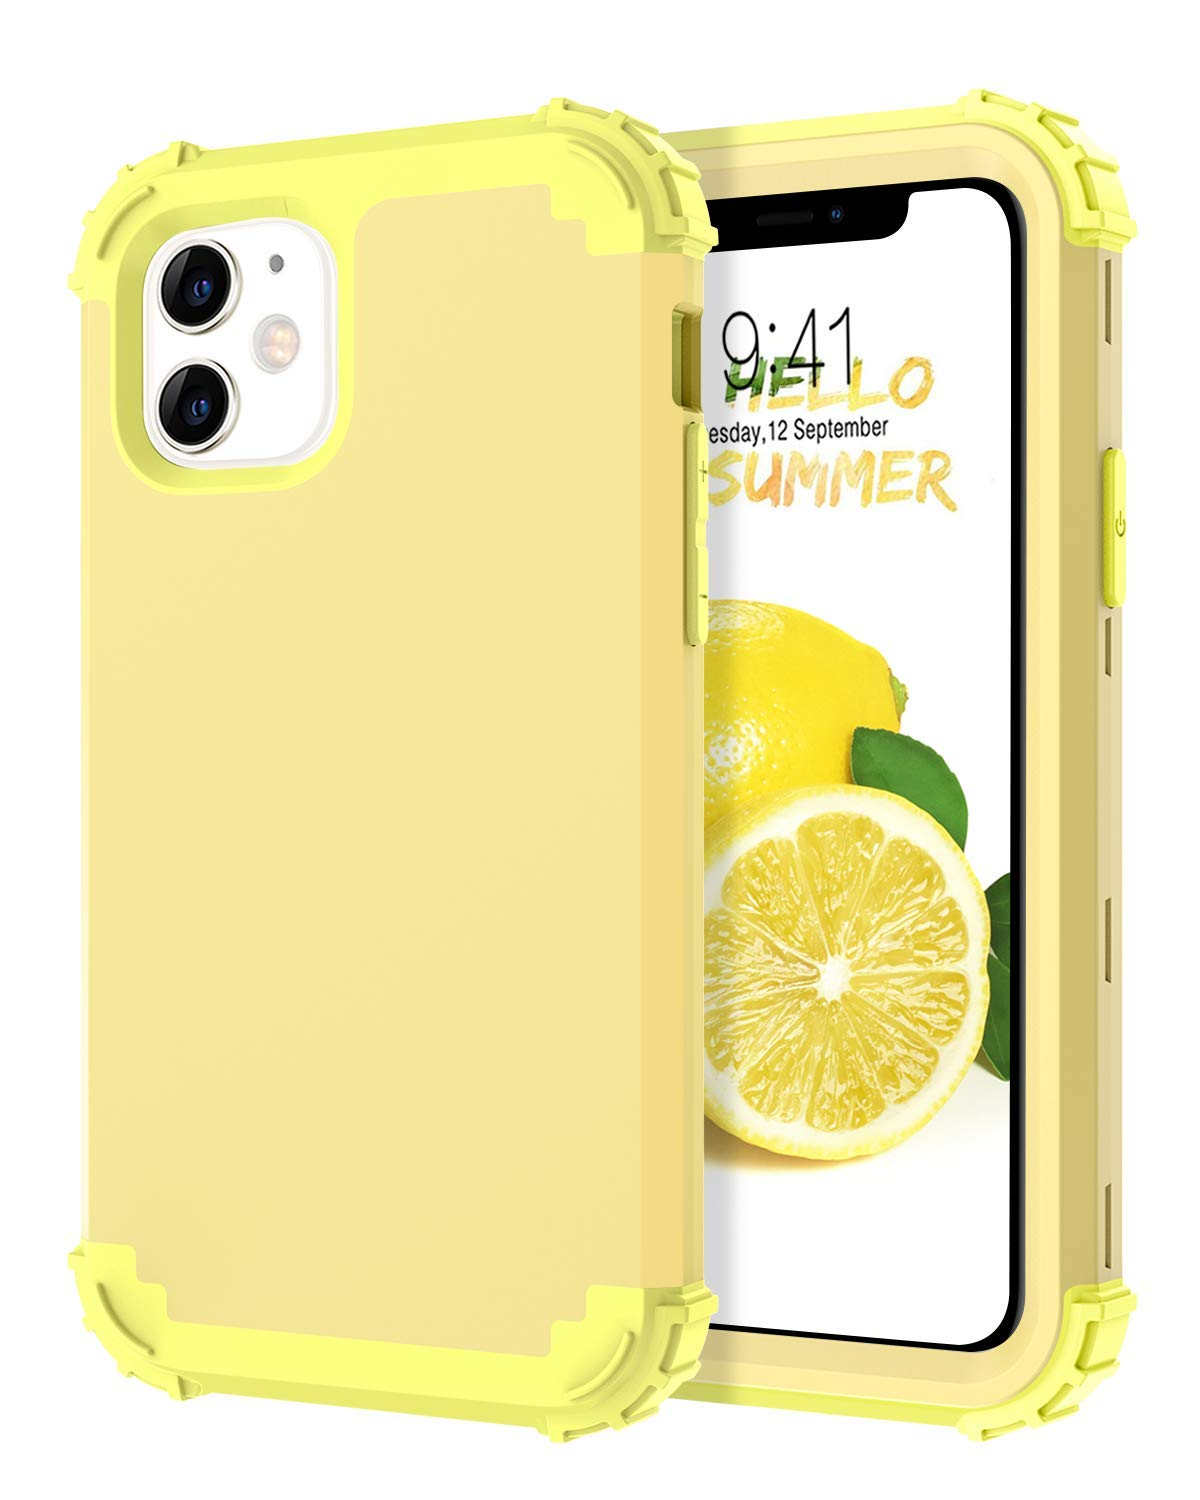 iPhone 11 Case, DUEDUE Heavy Duty Rugged Shockproof Drop Protection 3 in 1 Hybrid Hard PC Covers Soft Silicone Bumper Full Body Protective Case for iPhone 11 6.1 inch(2019),Lemon Yellow